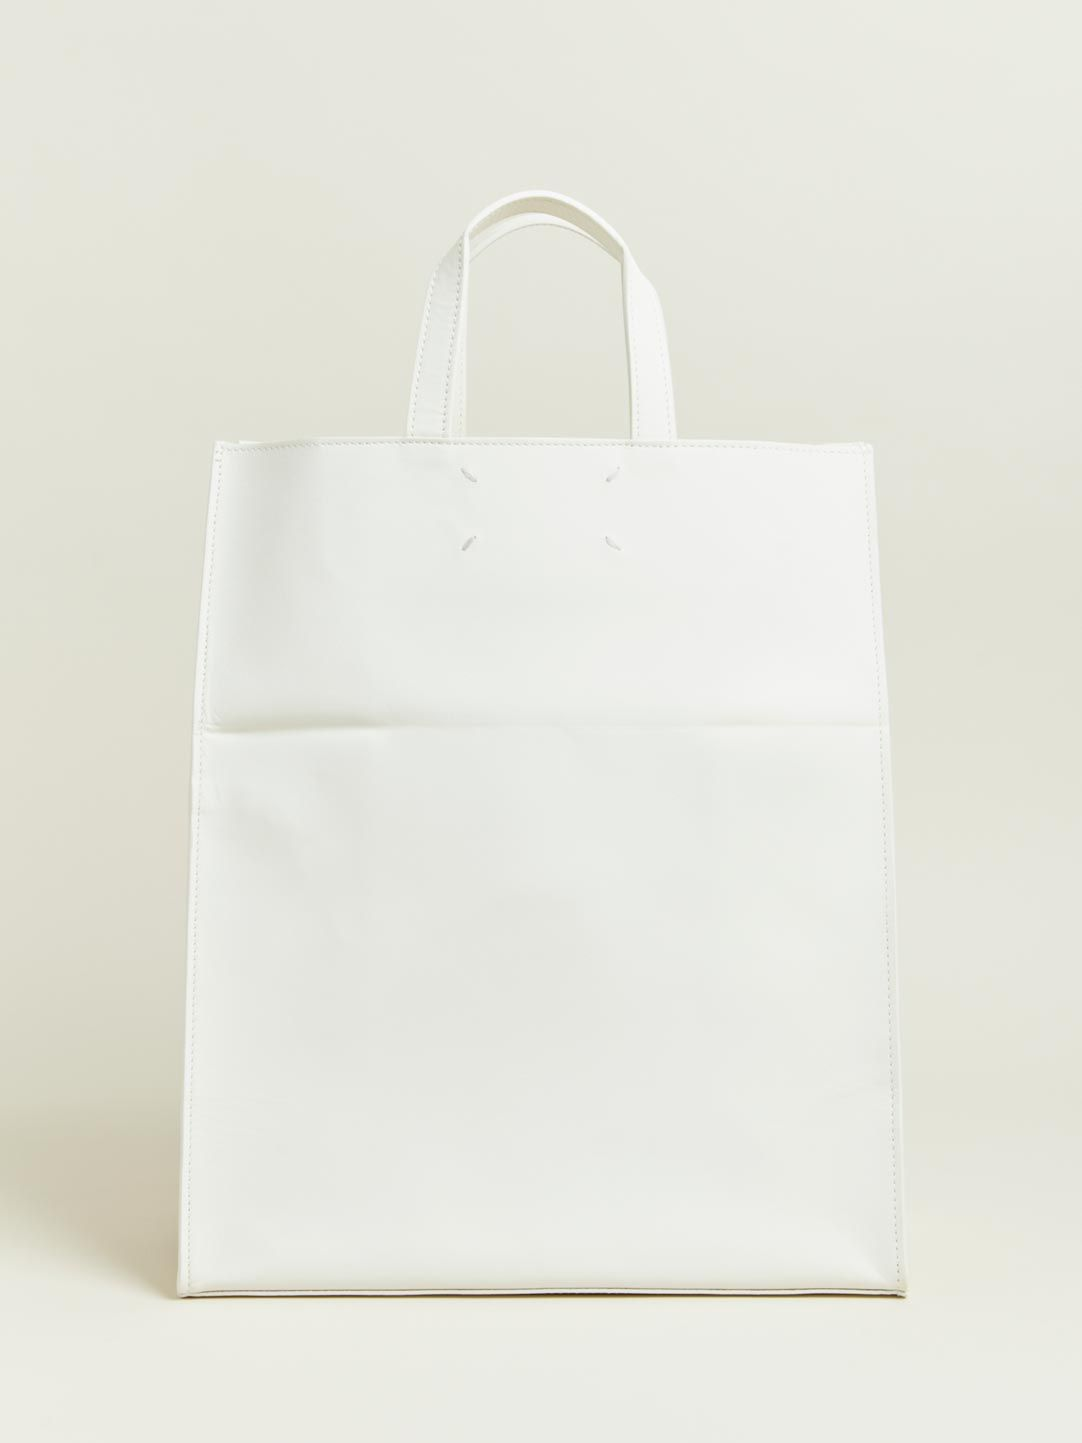 White Leather Tote Maison Martin Margiela Outlet Official Site Clearance Classic Cheapest Price Online Official Site For Sale jqRVSo